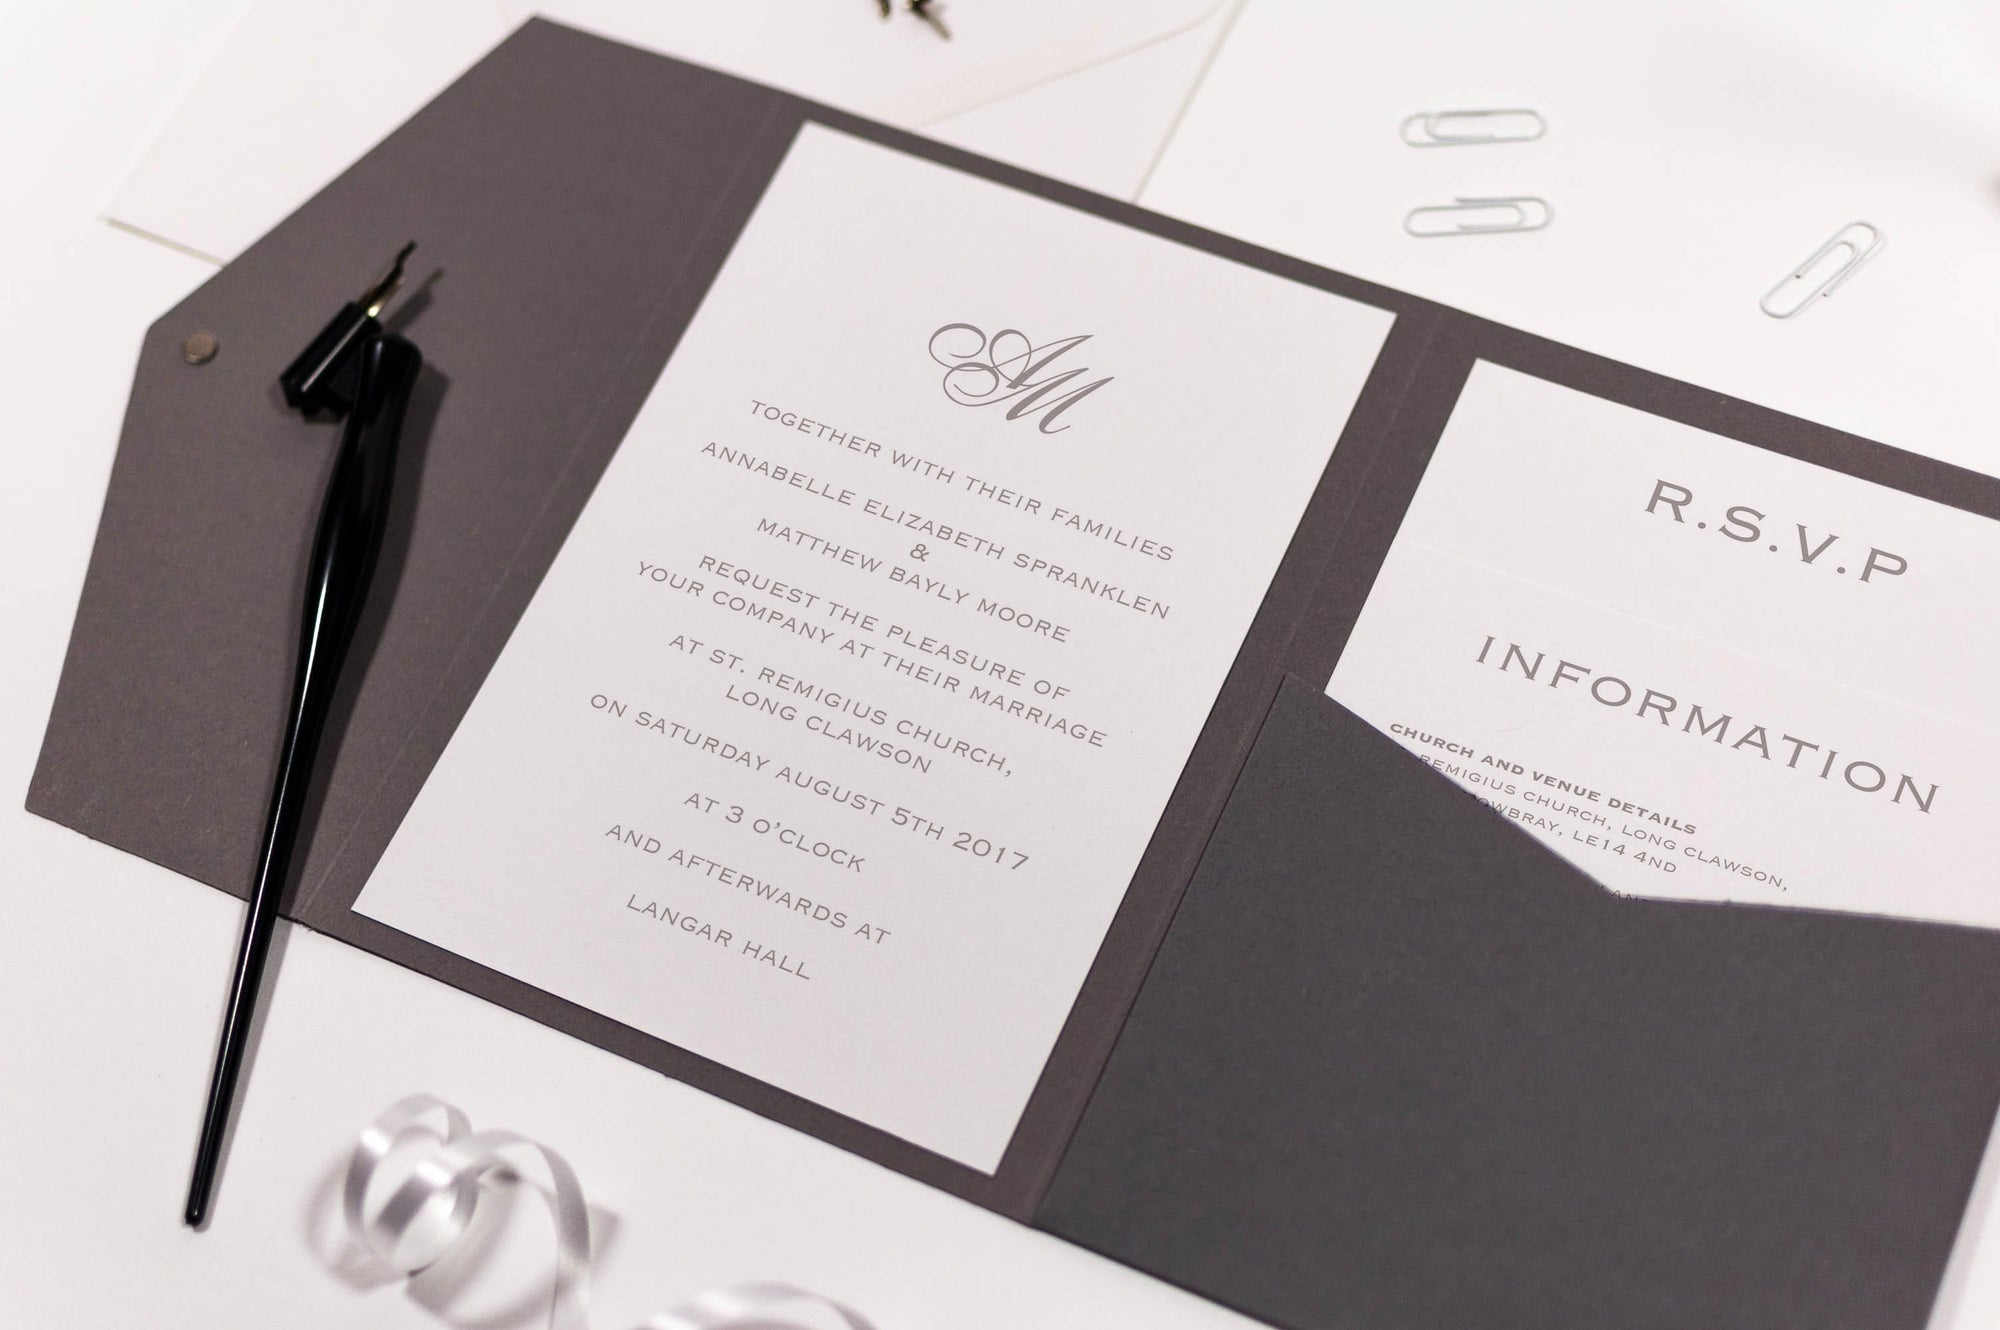 luxuryweddinginvitationsbycombossa Pocketfold Wedding Invitation Sample Invitation Classic Monogram Wedding Invitation in Platinum Grey Pocketfold, Sample